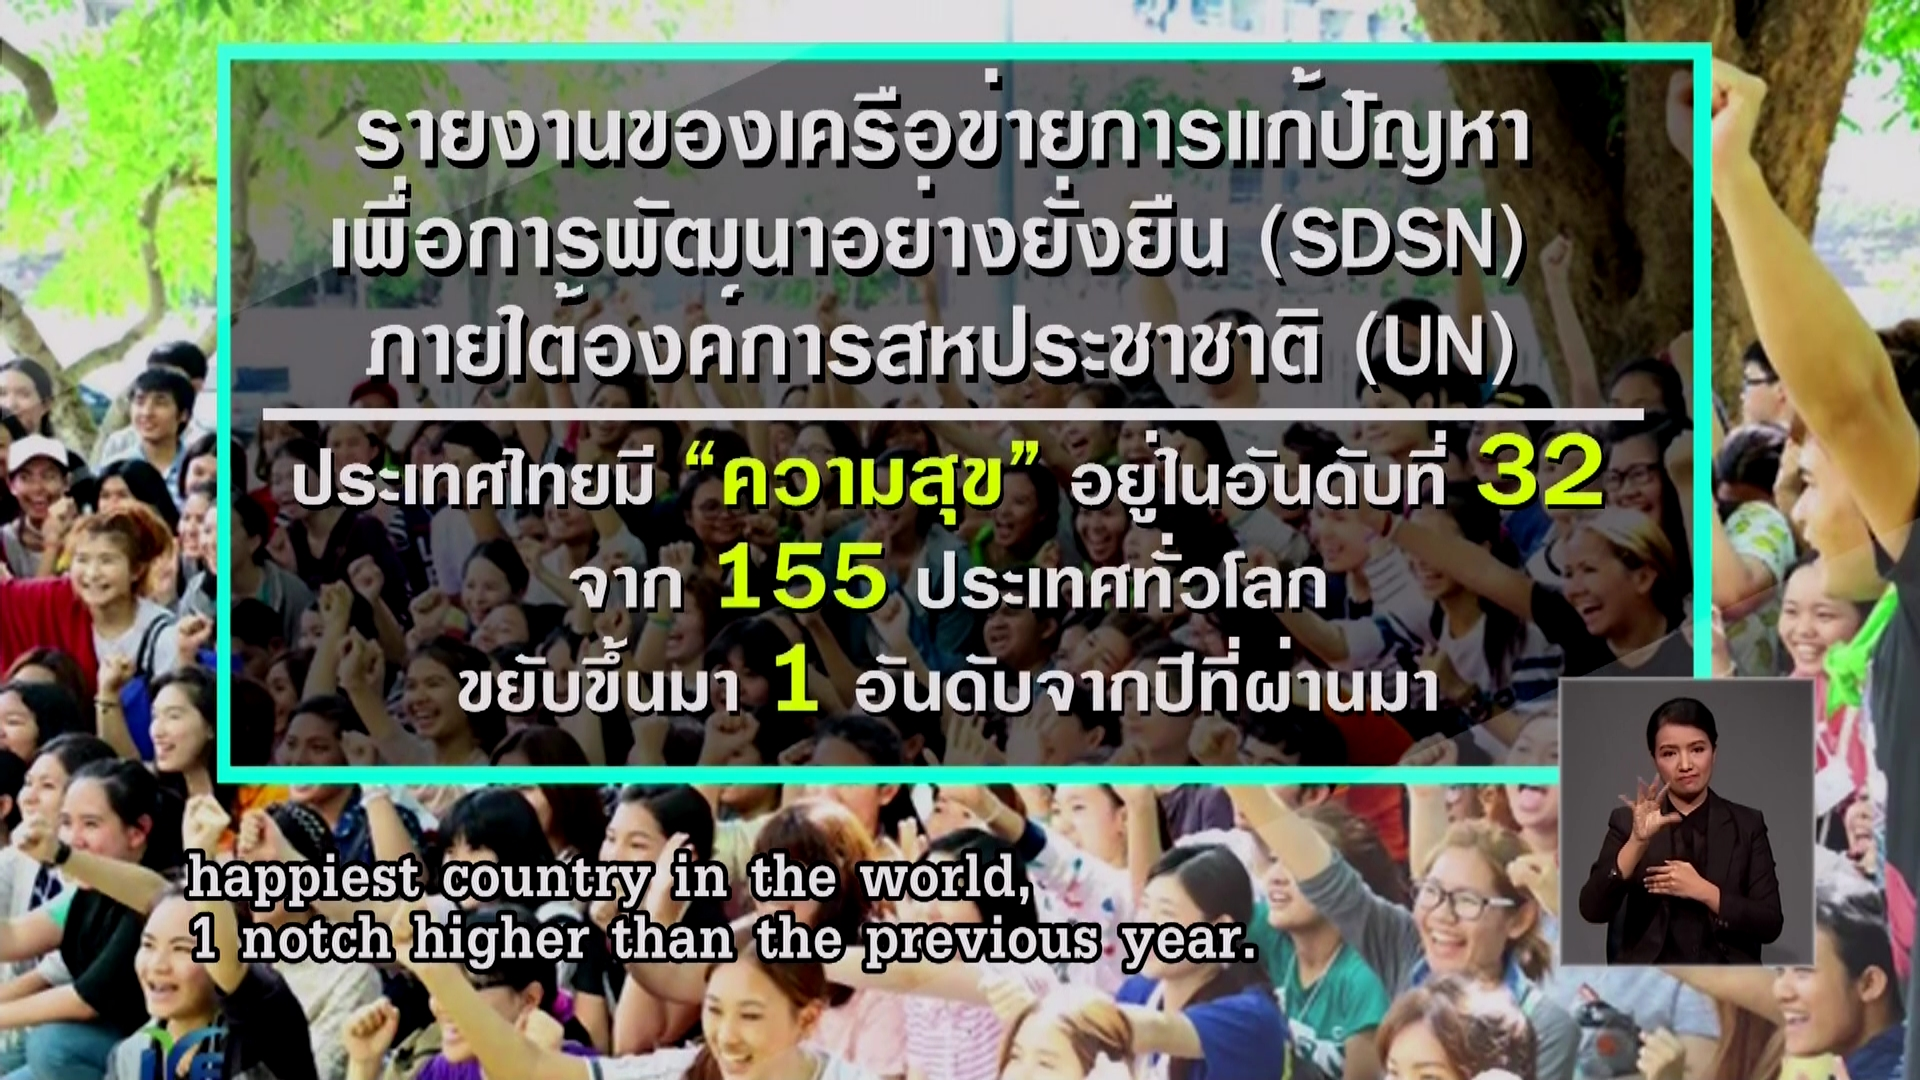 Thailand ranked 32nd happiest country by United Nations | Samui Times